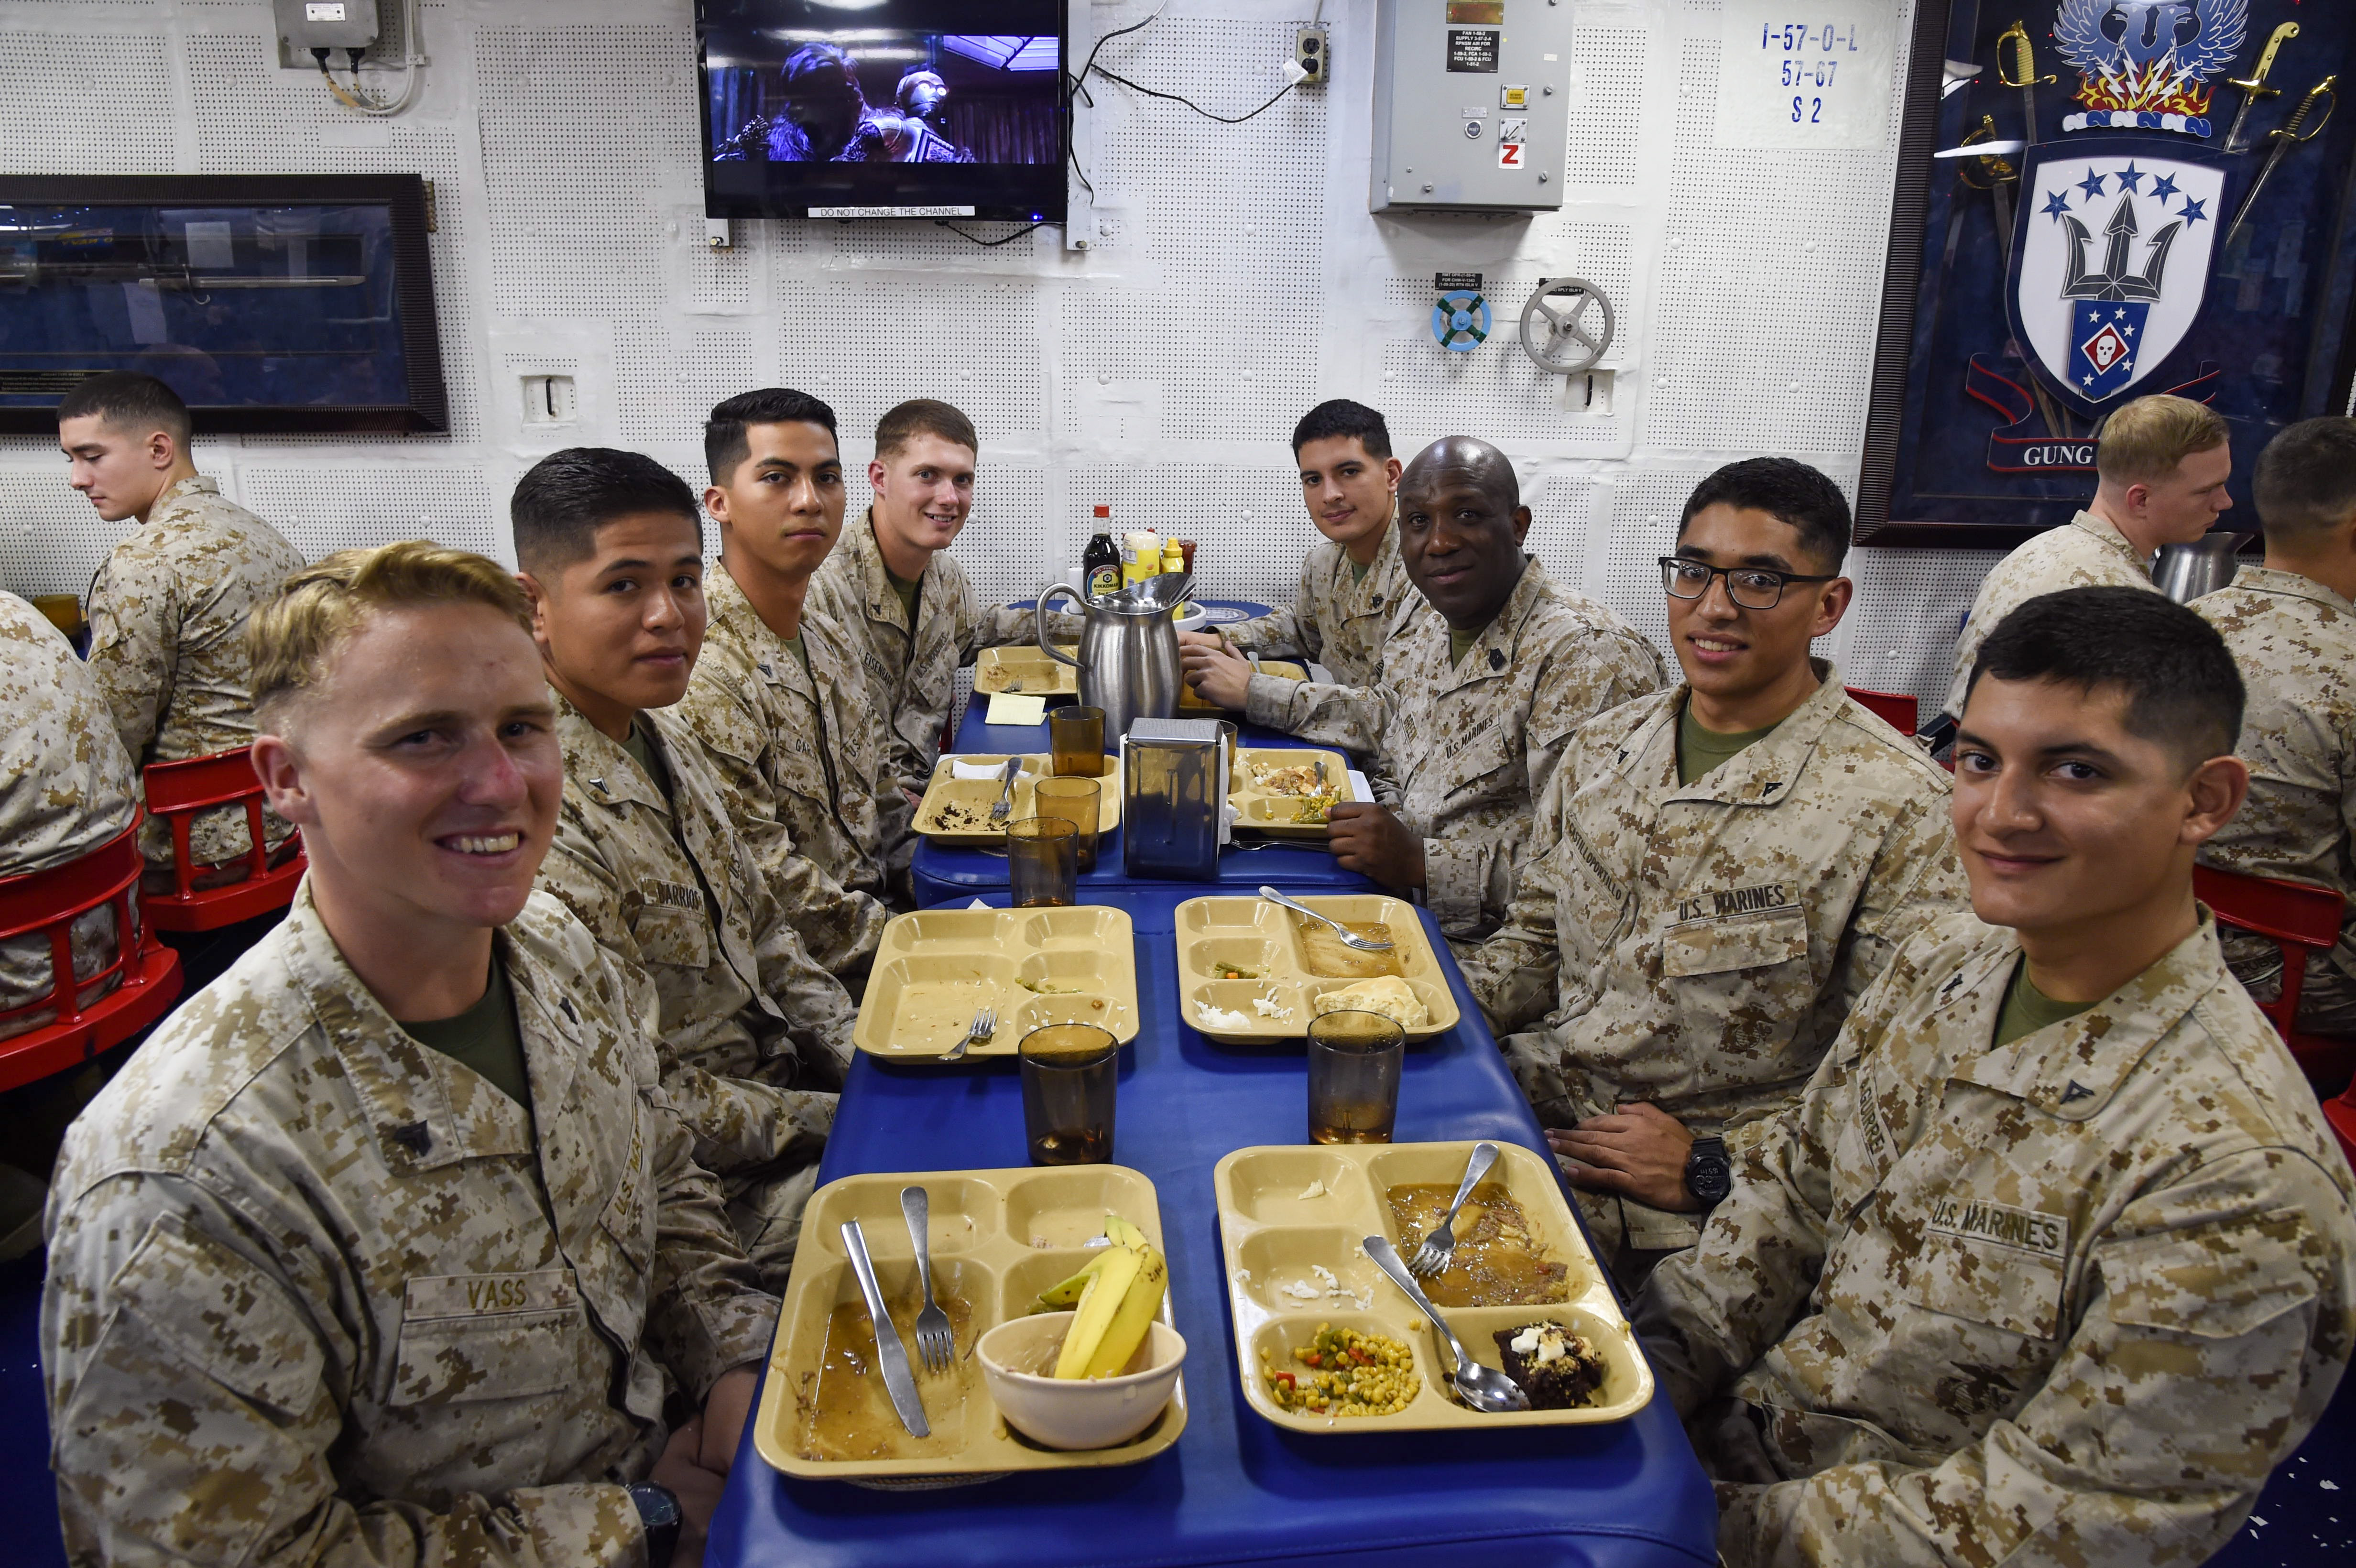 Sgt. Maj. Ronald Green, Sergeant Major of the Marine Corps, speaks to Marines with the 11th Marine Expeditionary Unit assigned to the amphibious assault ship USS Makin Island (LHD 8), during lunch aboard the Makin Island, in the Gulf of Aden, Dec. 23, 2016. A MEU is a forward-deployed, flexible sea-based Marine air-ground task force ready to respond to crisis and conduct limited contingency operations. (U.S. Air National Guard photo by Staff Sgt. Penny Snoozy)